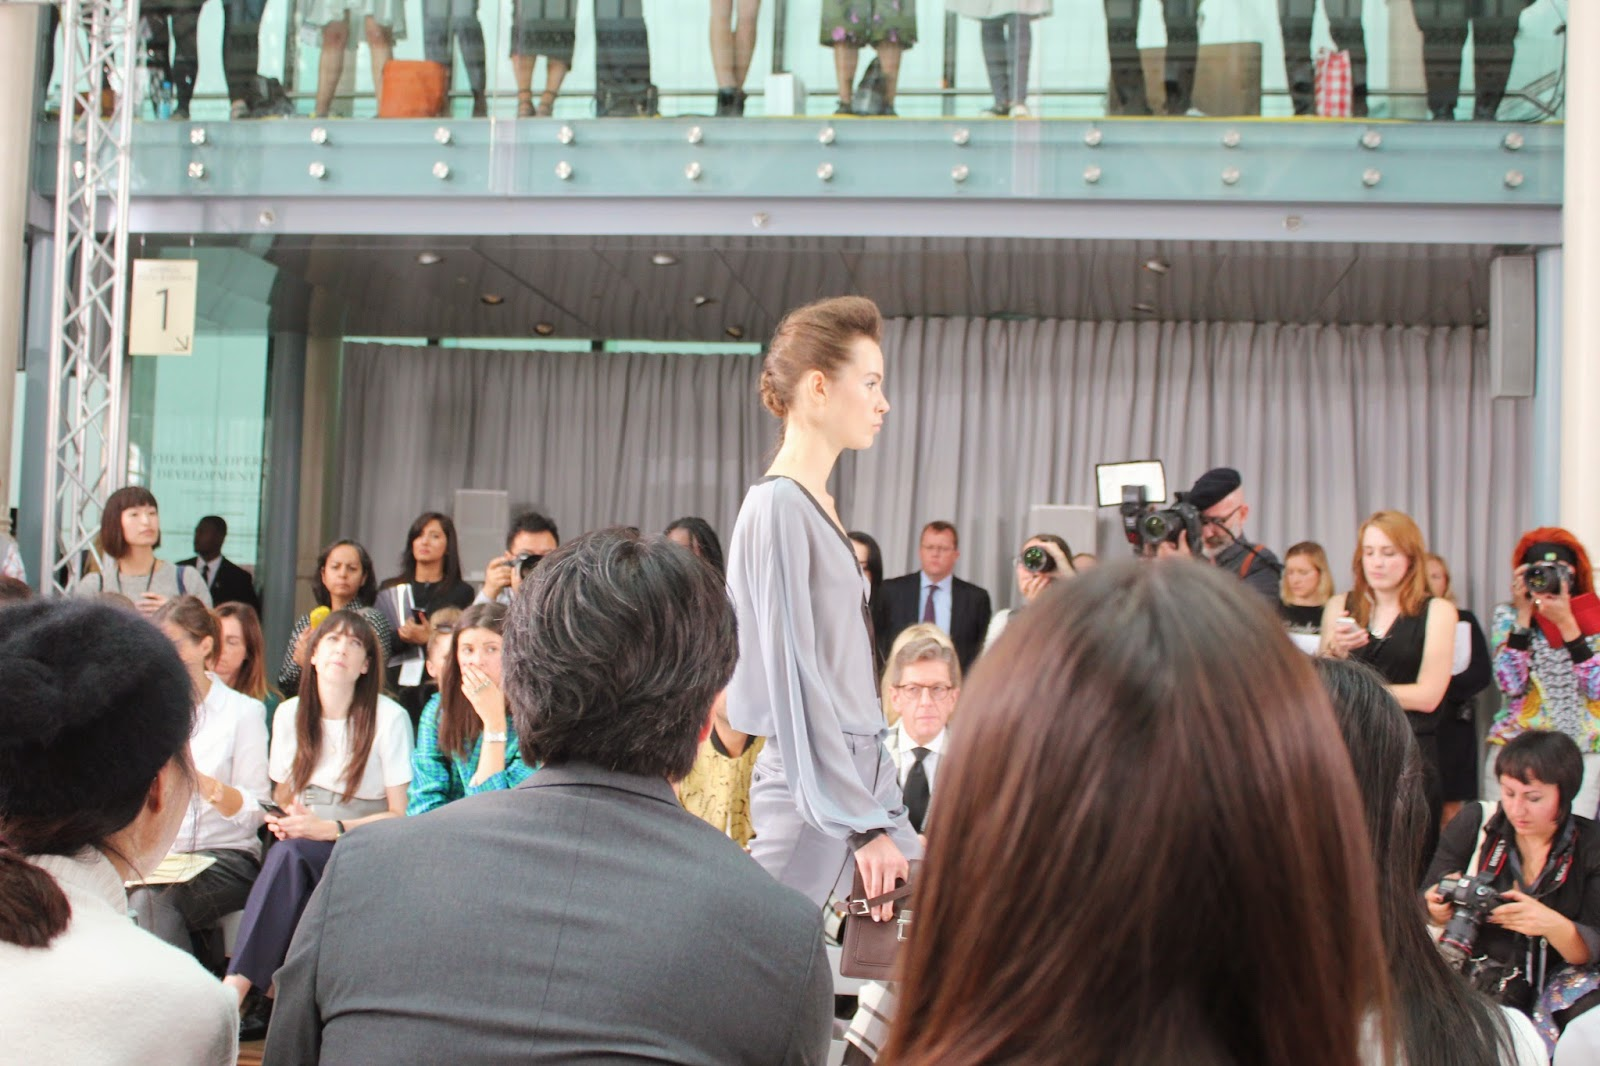 london-fashion-week-2014-lfw-DAKS-show-catwalk-spring-summer-2015-models-clothes-fashion-frow-royal-opera-house-shirt-trousers